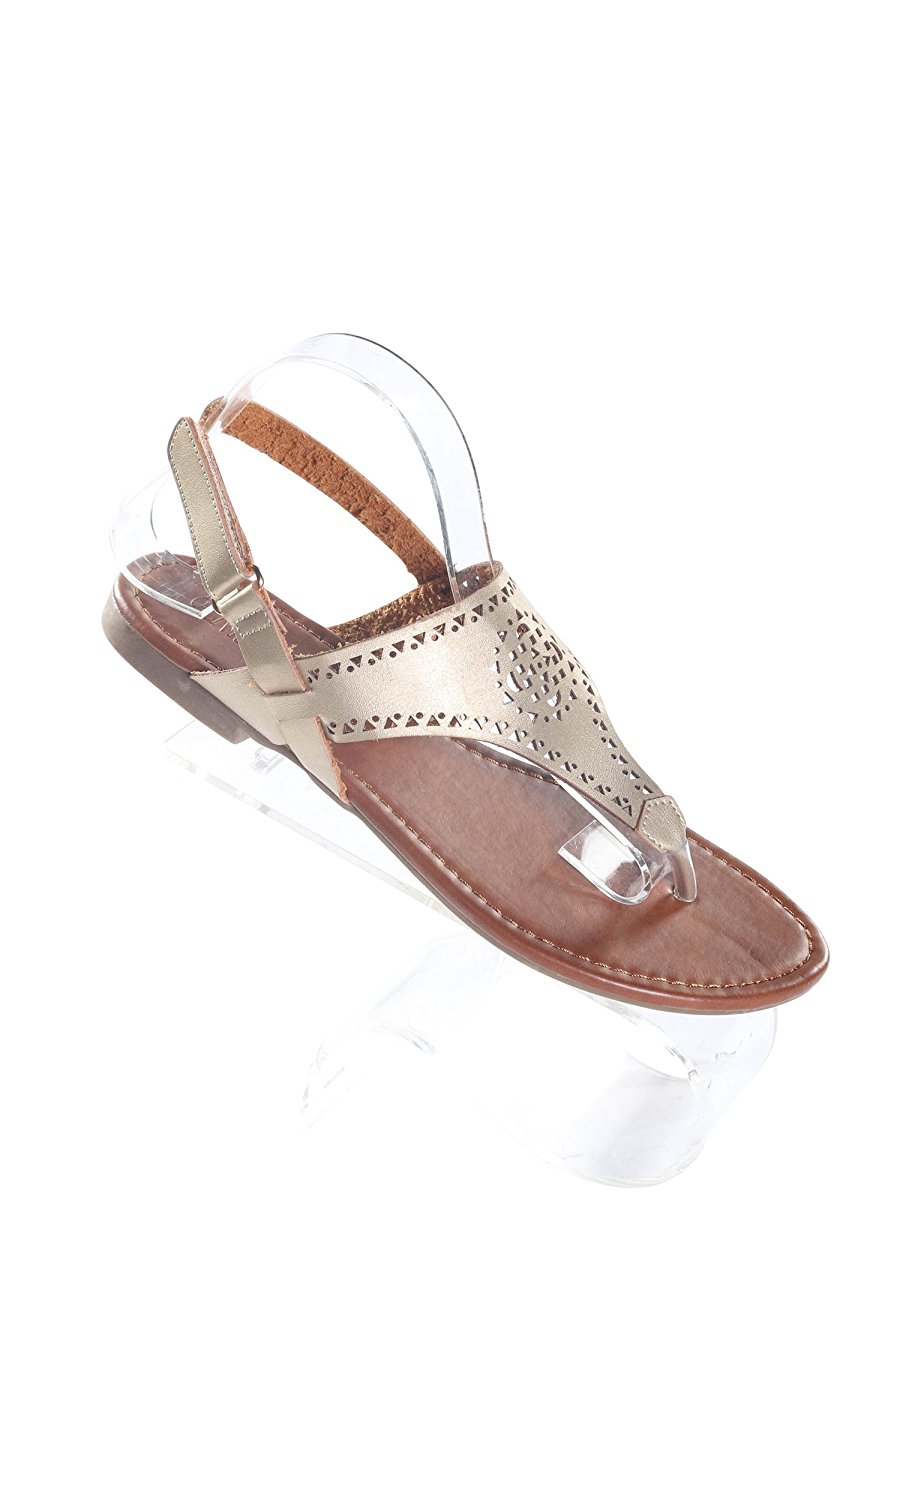 ffdc0f4365f Buy Ocean Pacific Mens Casual Thong Sandal in Cheap Price on Alibaba.com